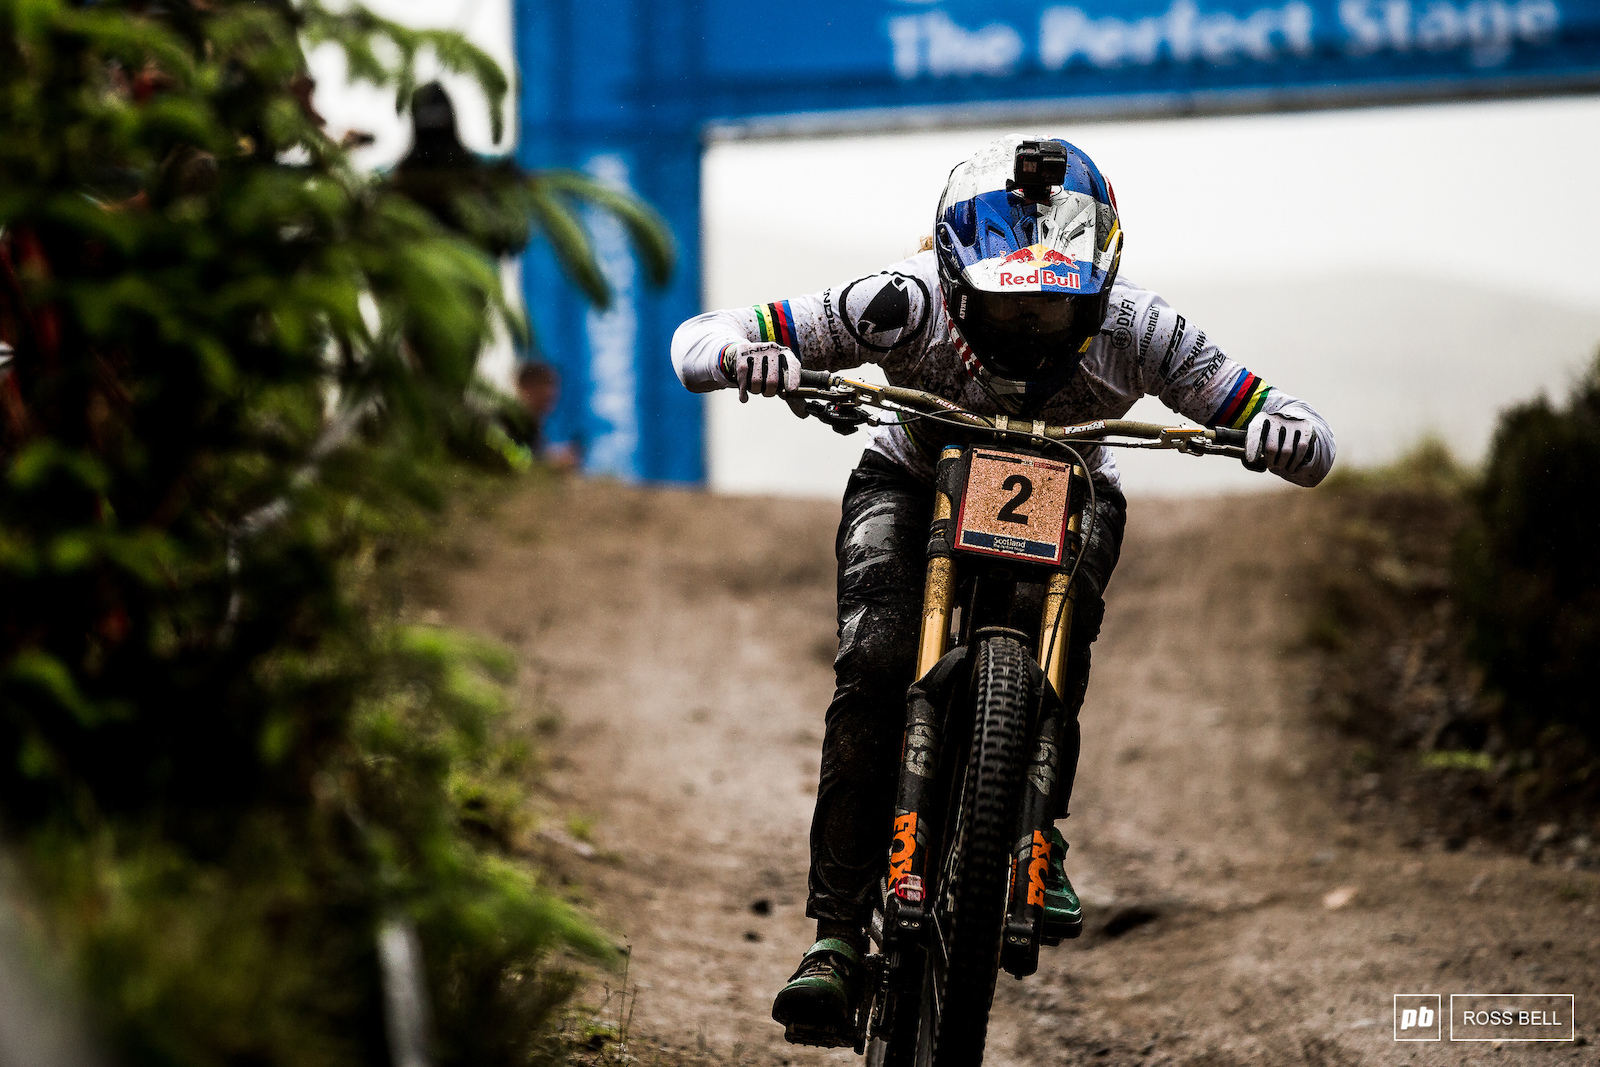 Rachel Atherton charging hard to the line to take her first win aboard her own bike brand in Fort William last season.